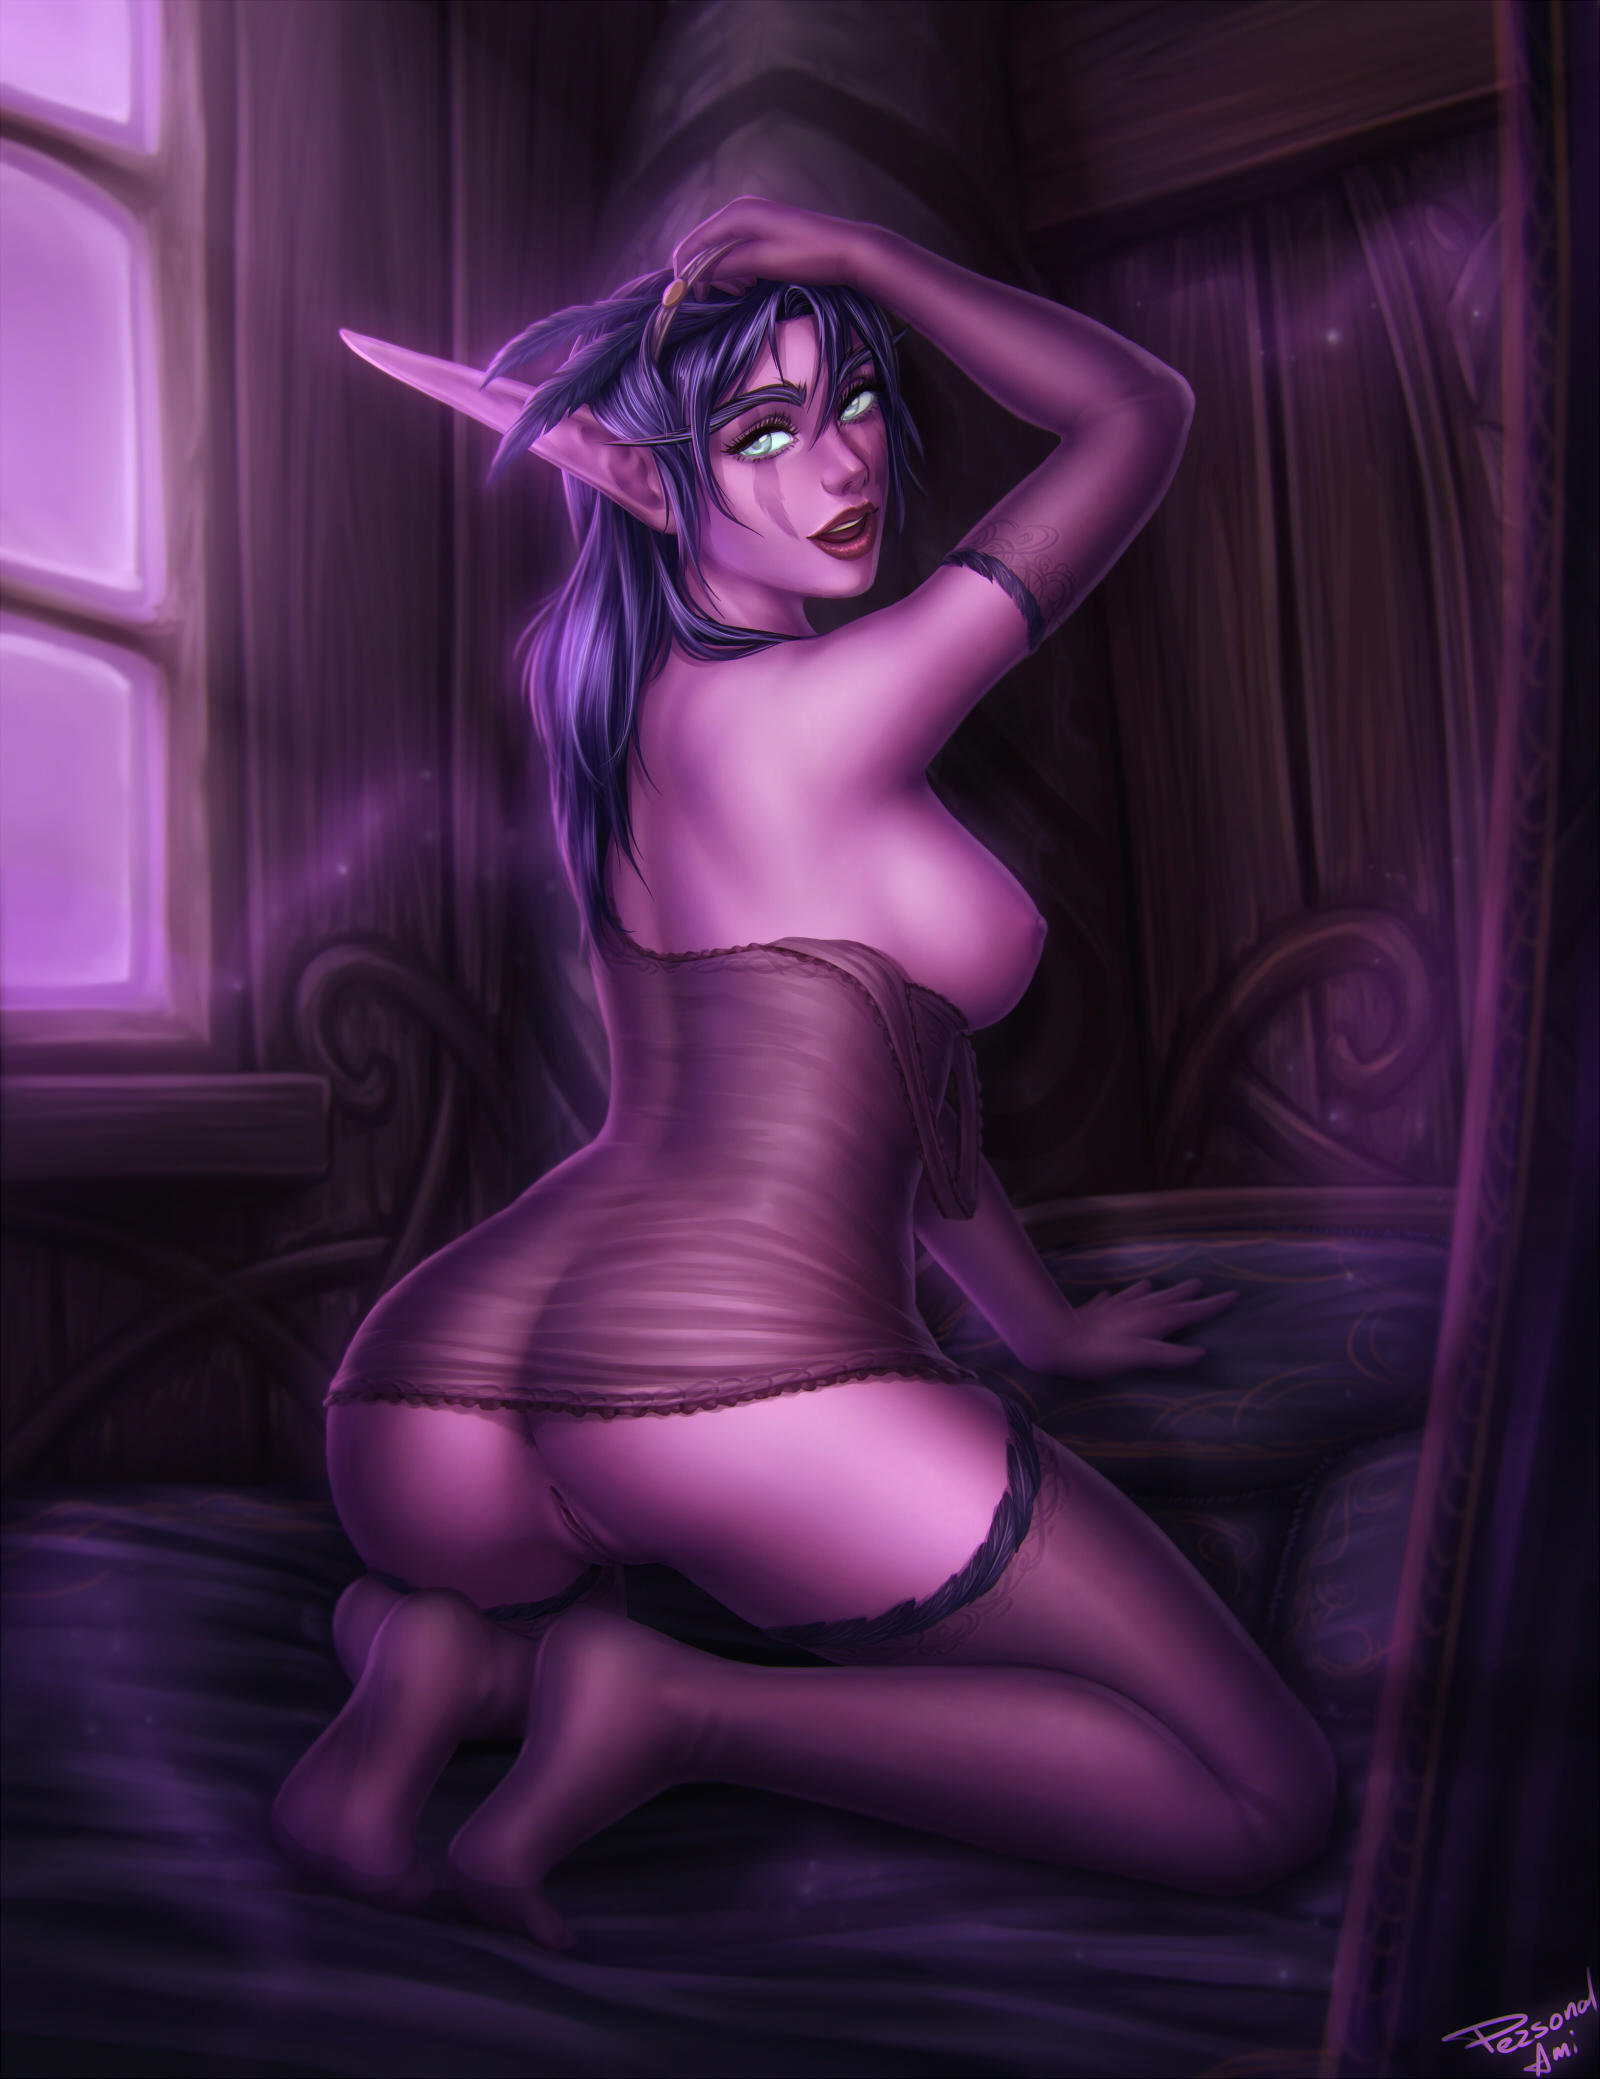 World of warcraft hentai fan art, great boobs suicide girls nude